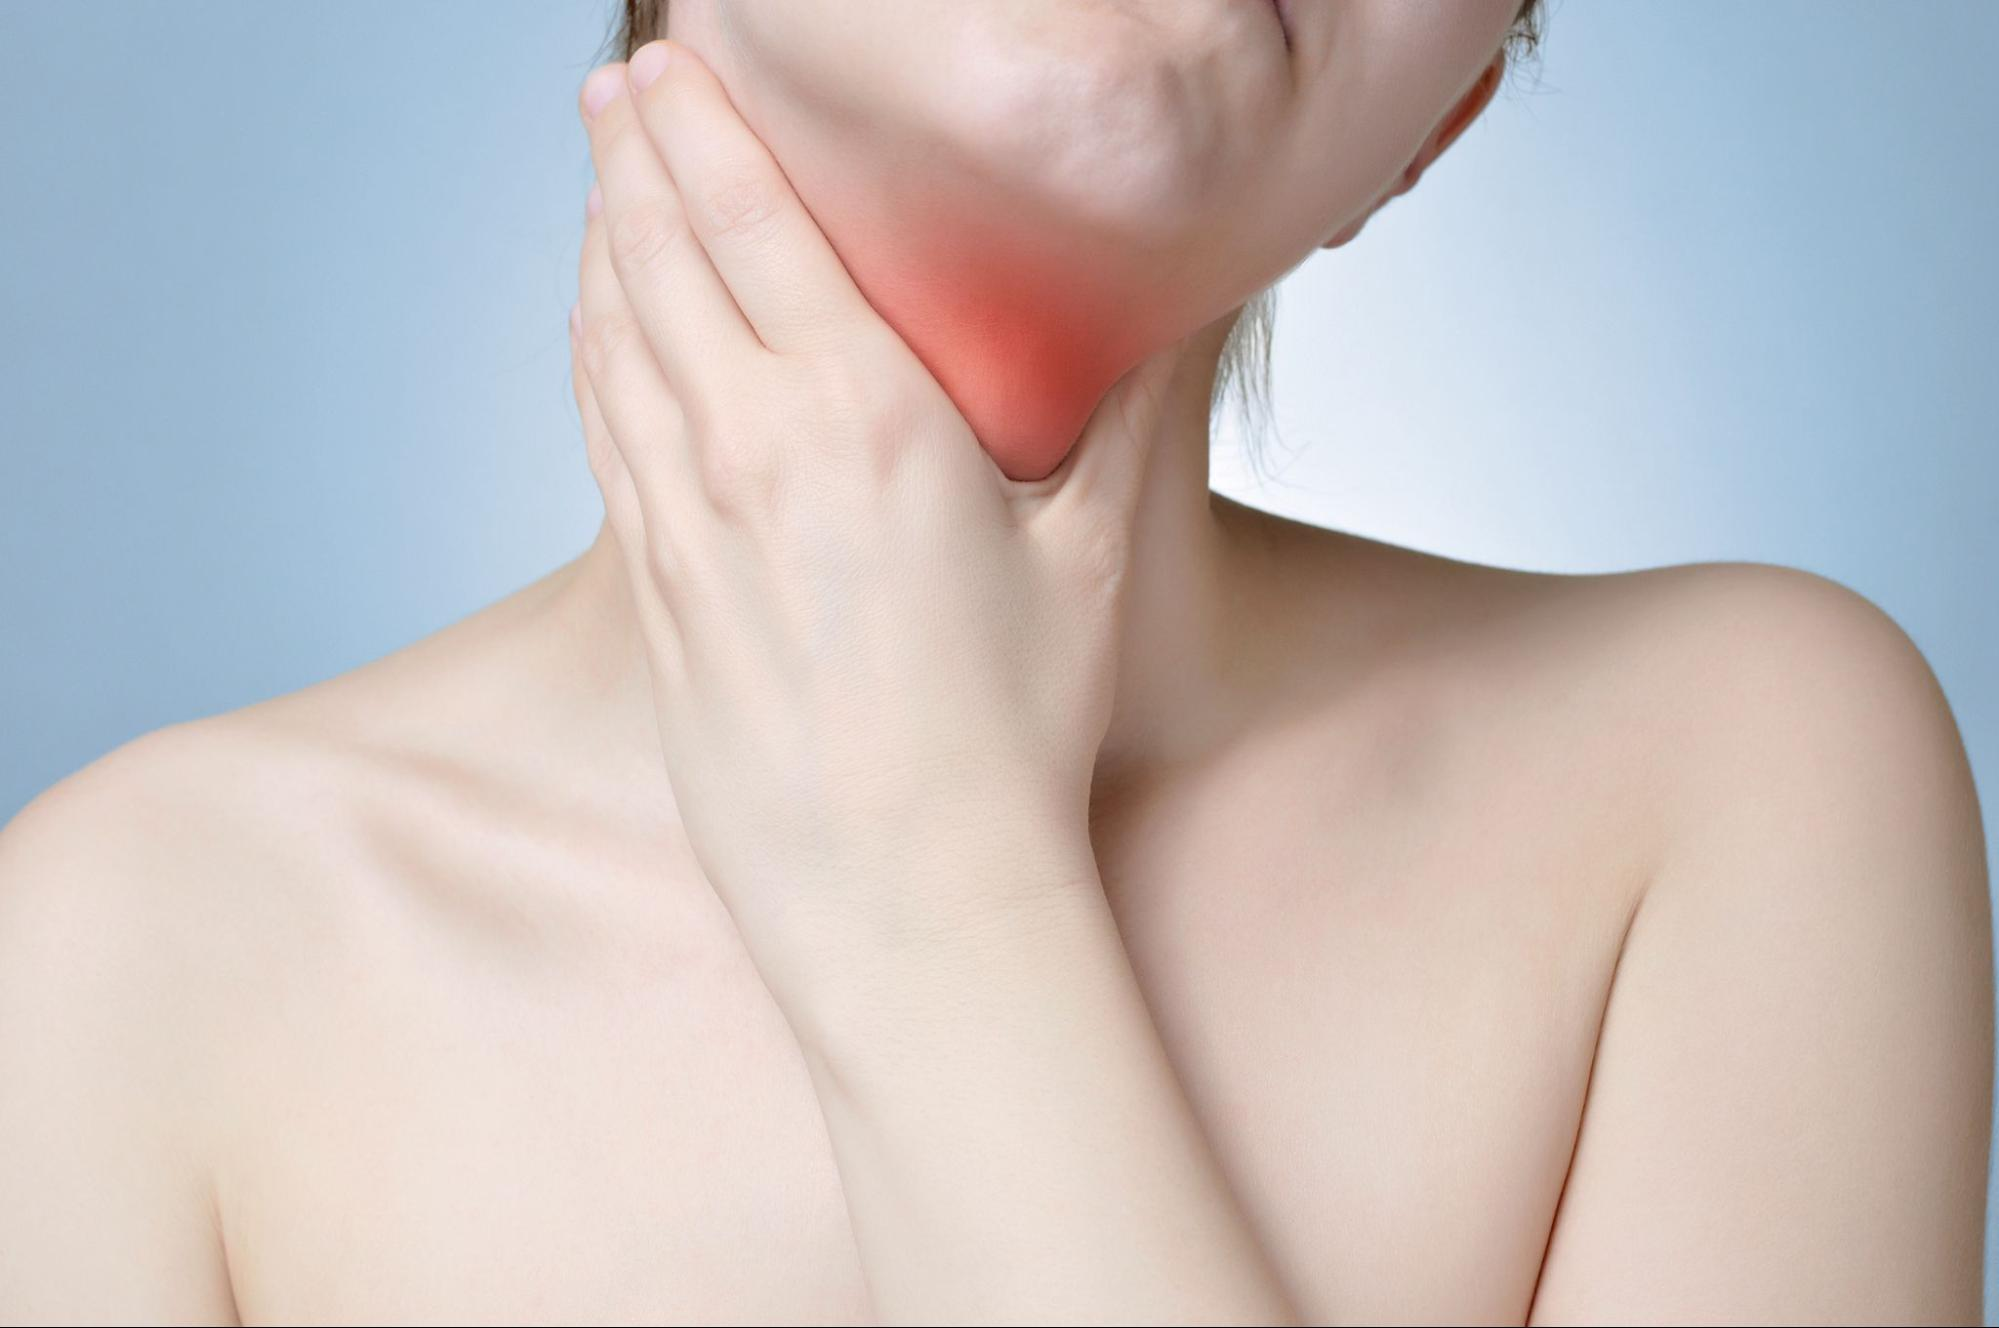 LPR diet: Woman in pain, holding up a hand to her neck